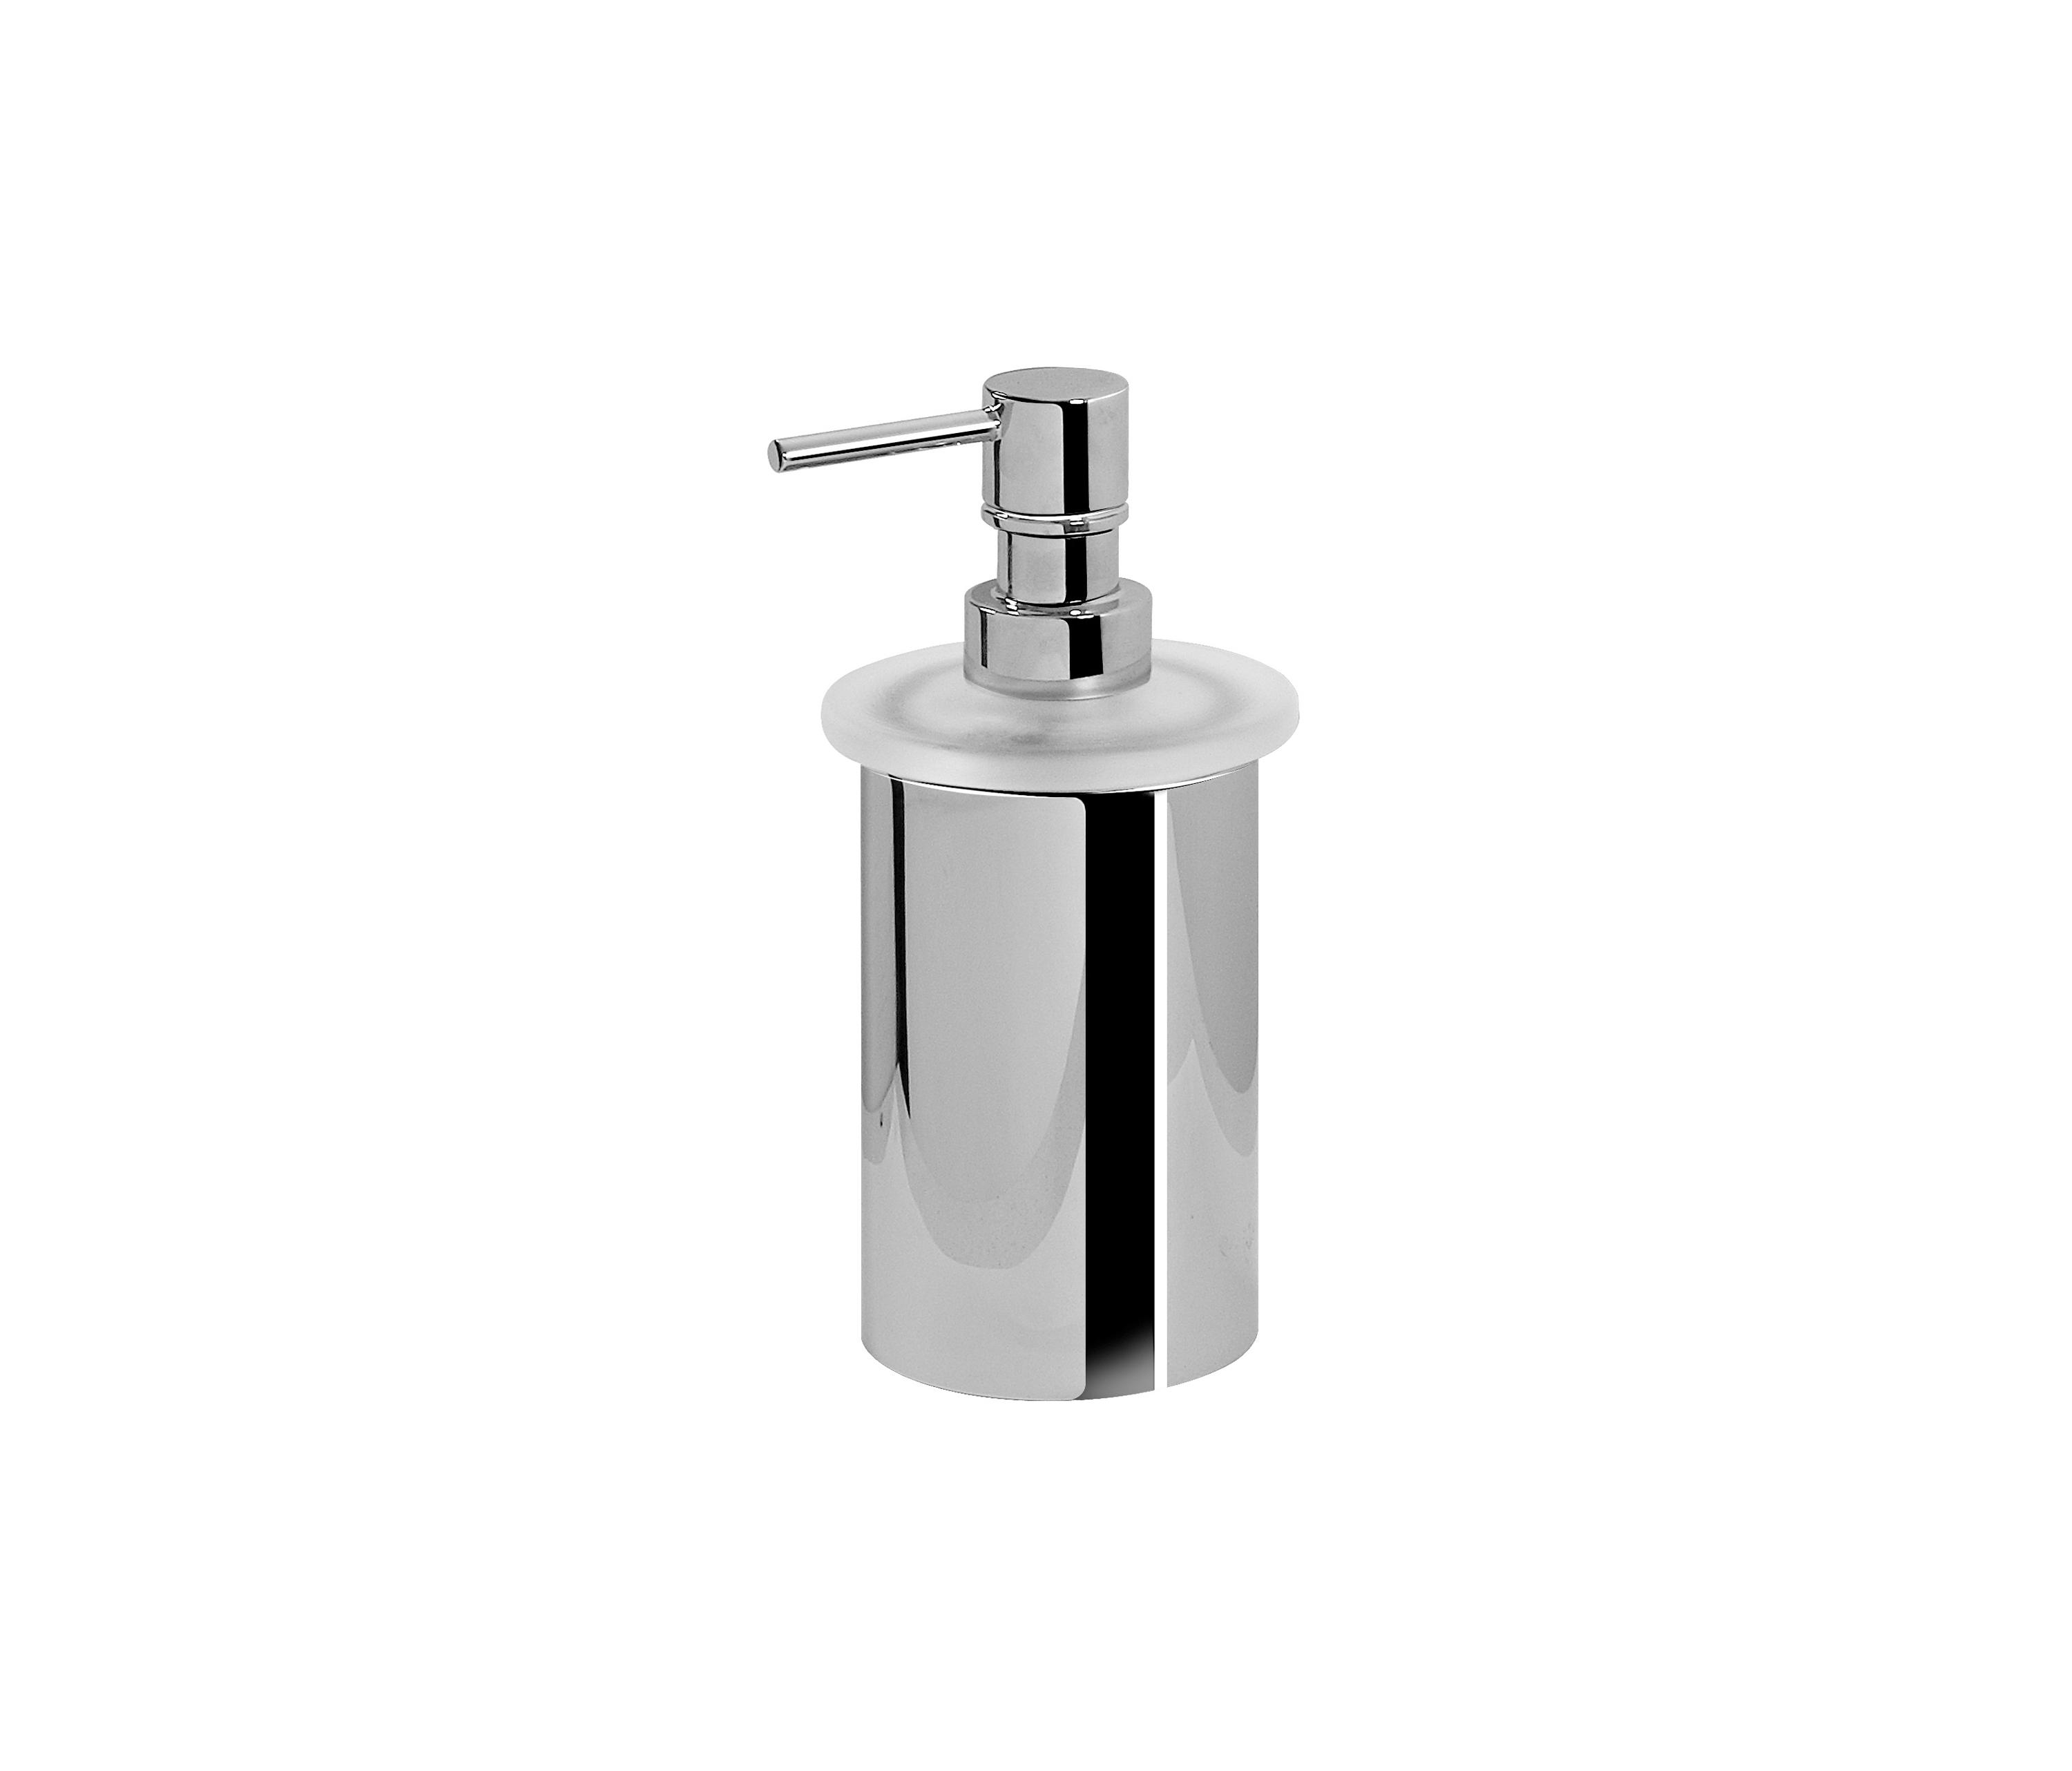 Sade Free Standing Soap Dispenser Soap Dispensers From Graff Architonic